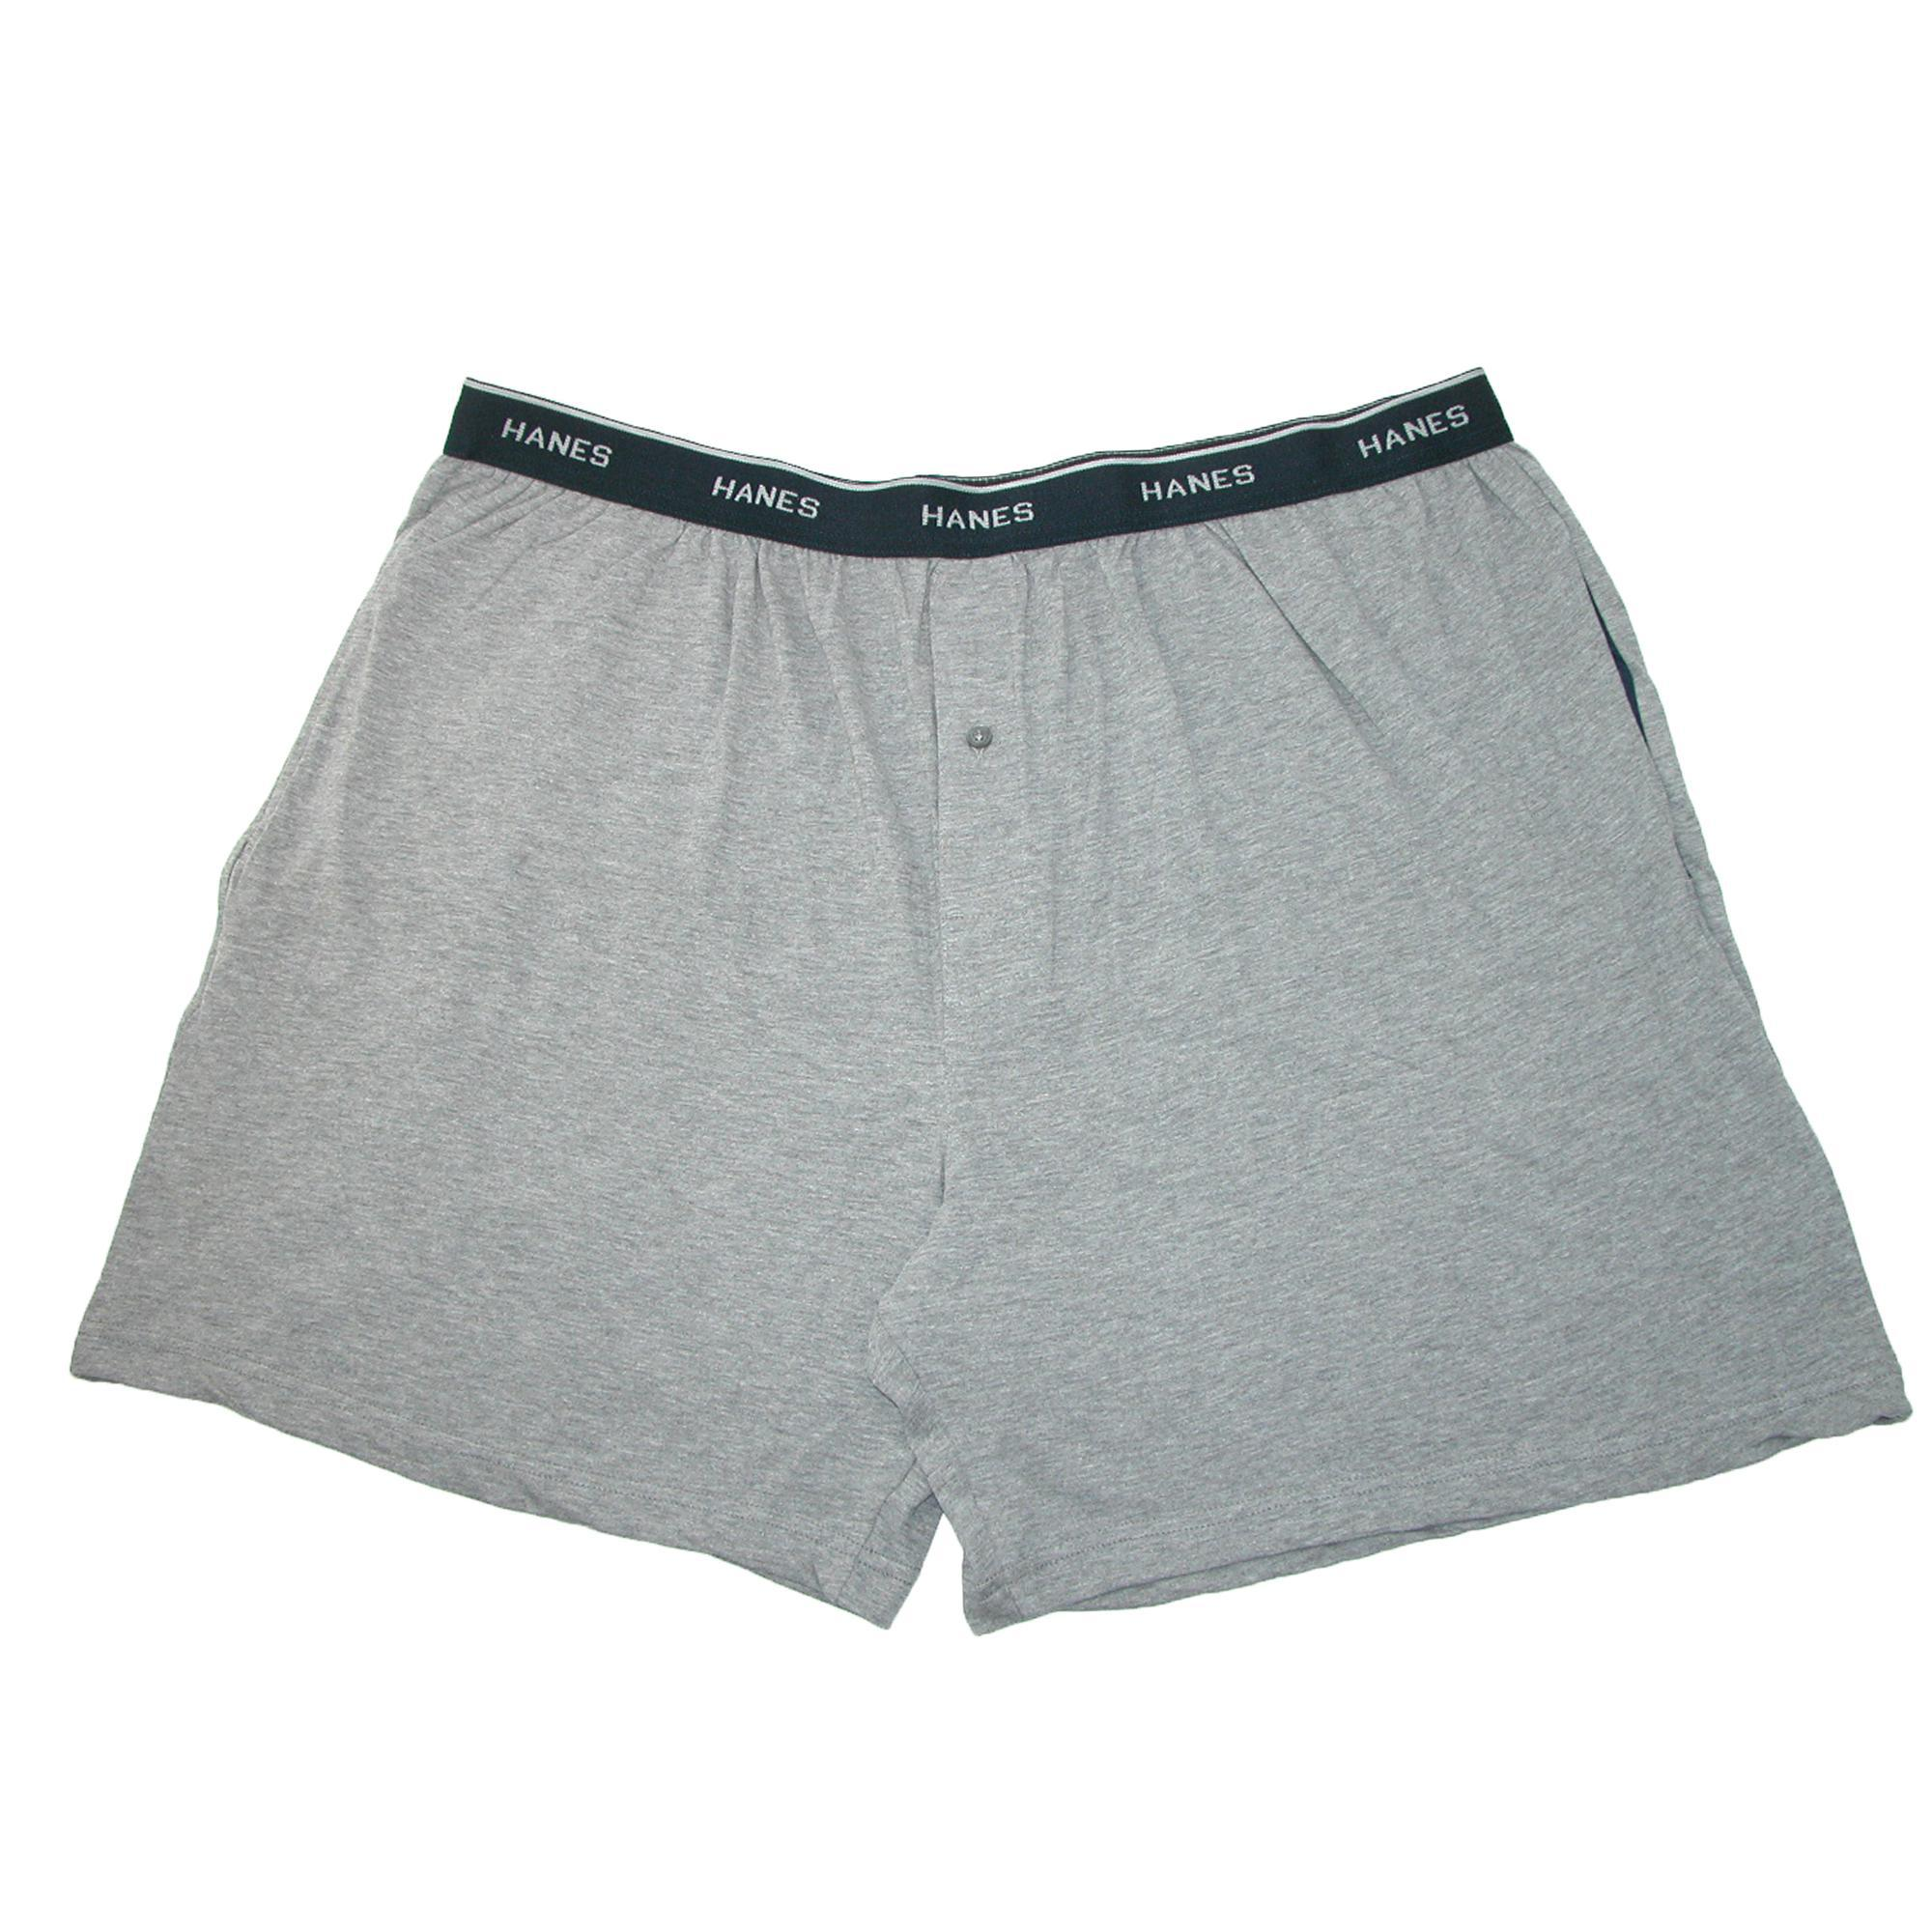 Men's Sleep Shorts Loose Lounge Shorts Soft and Comfort Pajama Bottom Pants for Sleep Wear & Lounge Wear. from $ 53 99 Prime. 5 out of 5 stars 1. Aimado. Men Summer Soft Comfort Loose Gym Pajama Bottoms Sleepwear Shorts(S-XXL) from $ 5 99 Prime. 5 out of 5 stars 2. Previous Page 1 2 3 36 Next Page. Show results for Amazon Fashion.